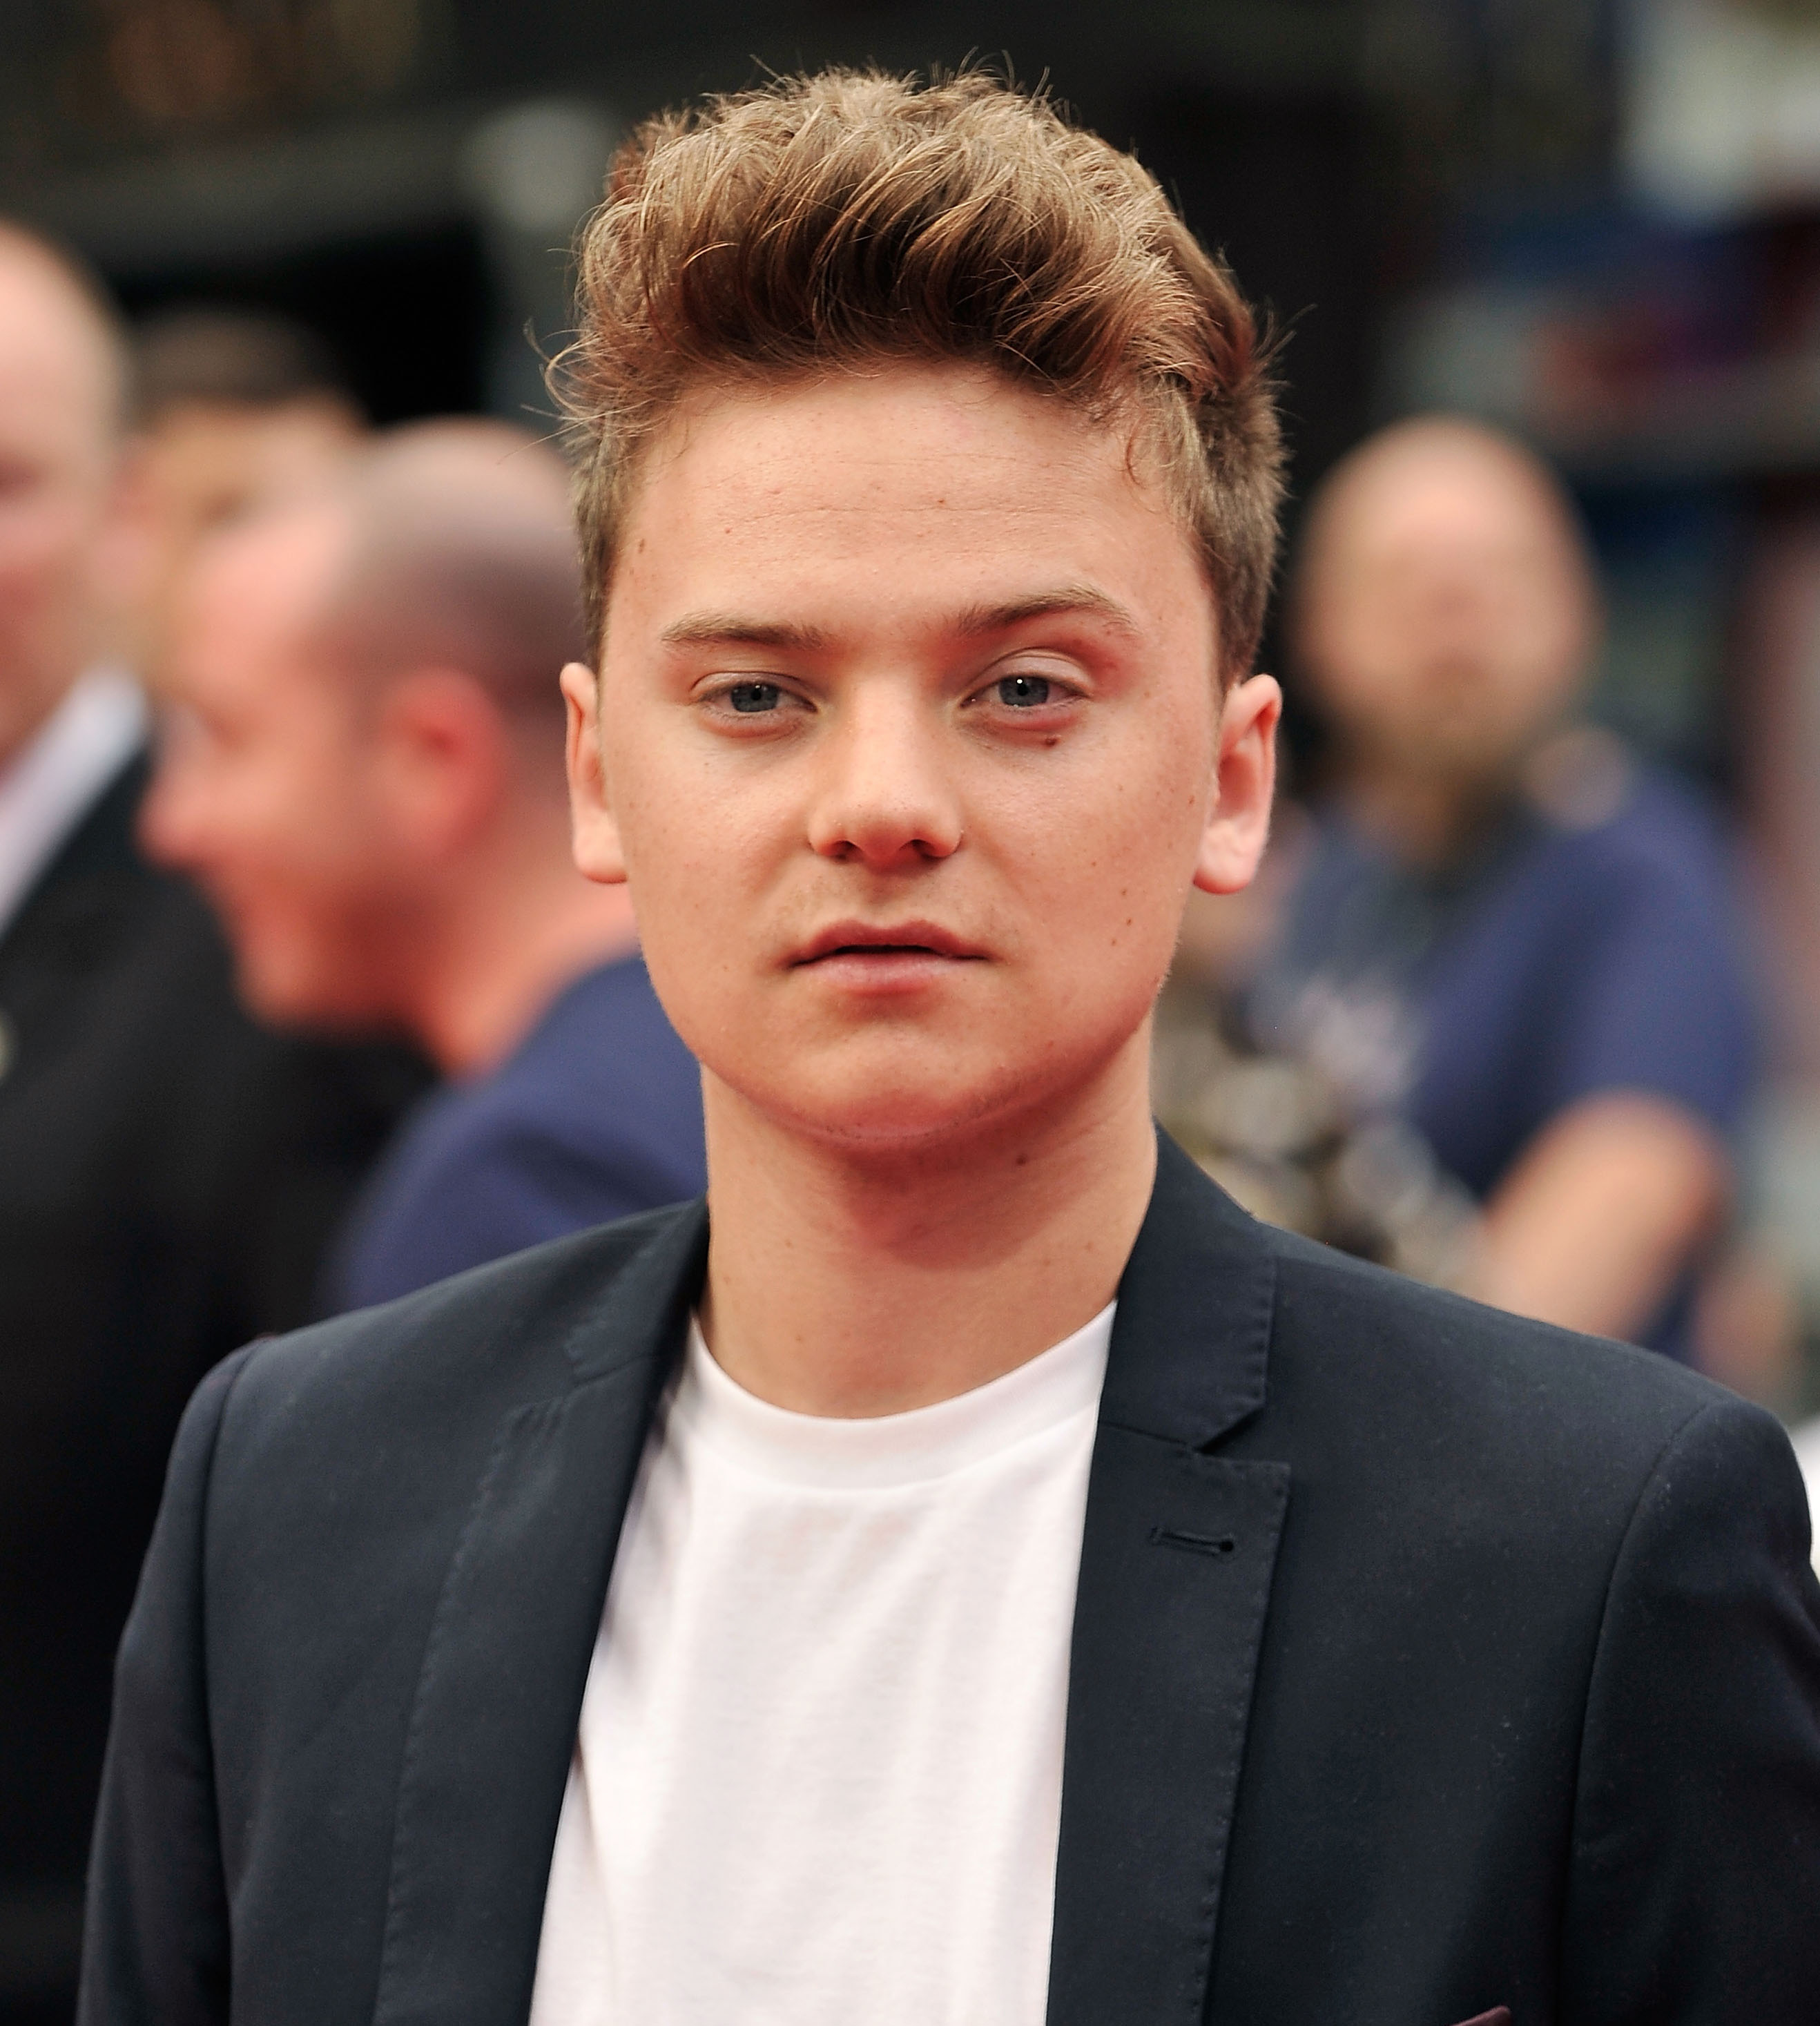 What an Animal: Conor Maynard trashes hotel room just for the hell of it